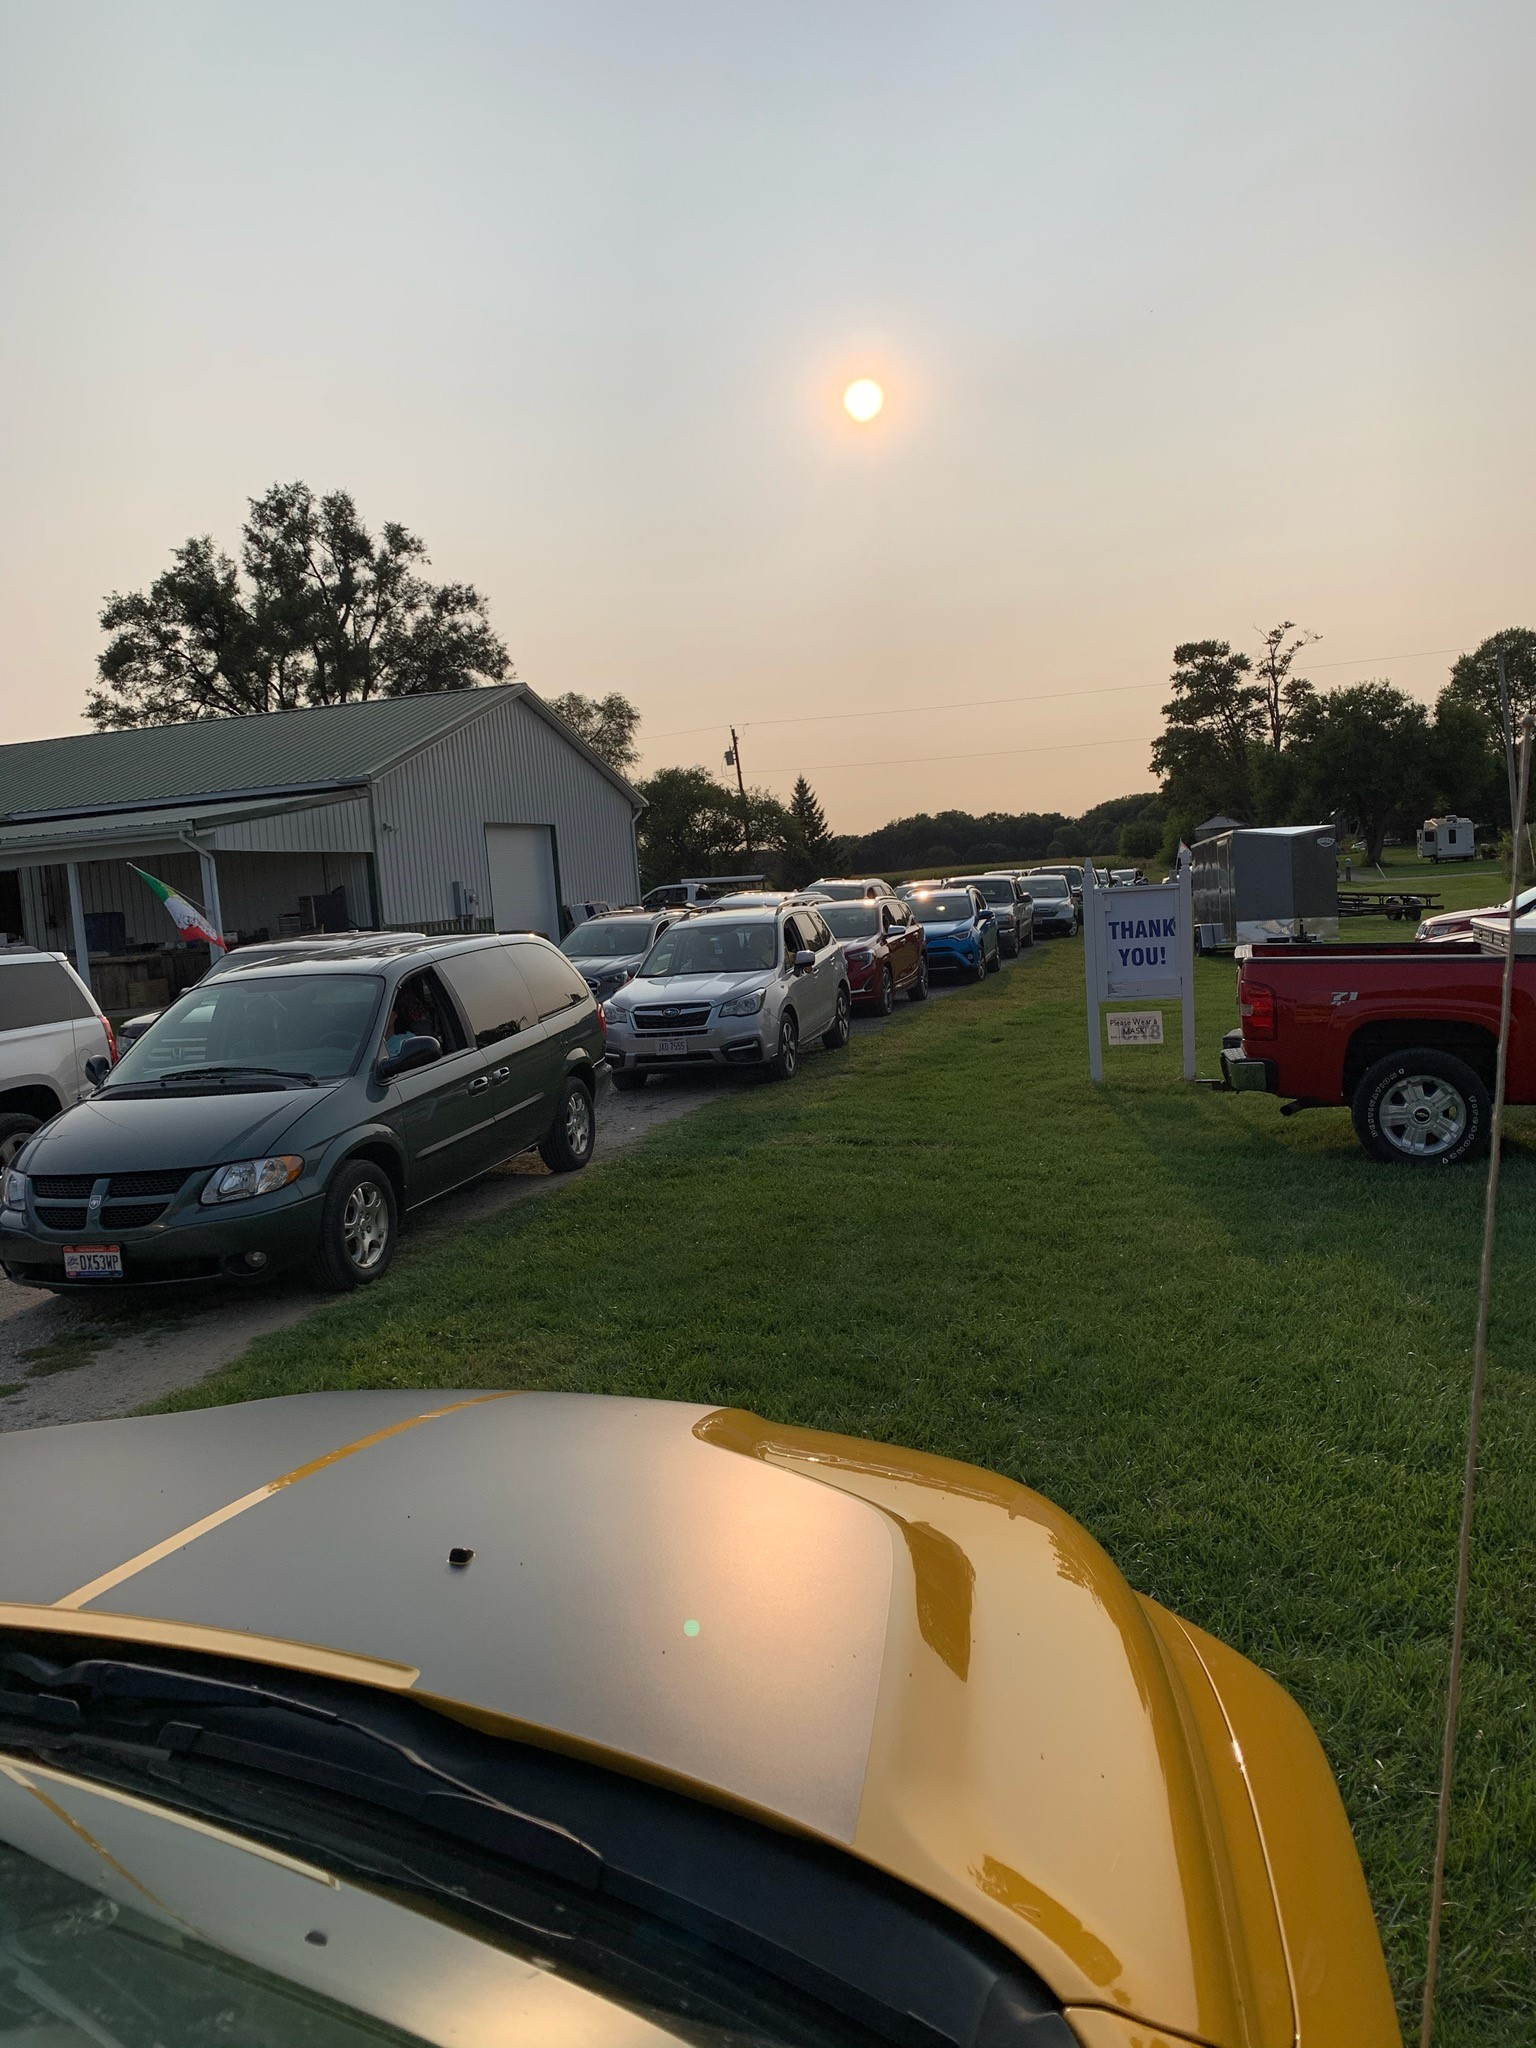 Cars at the meeting